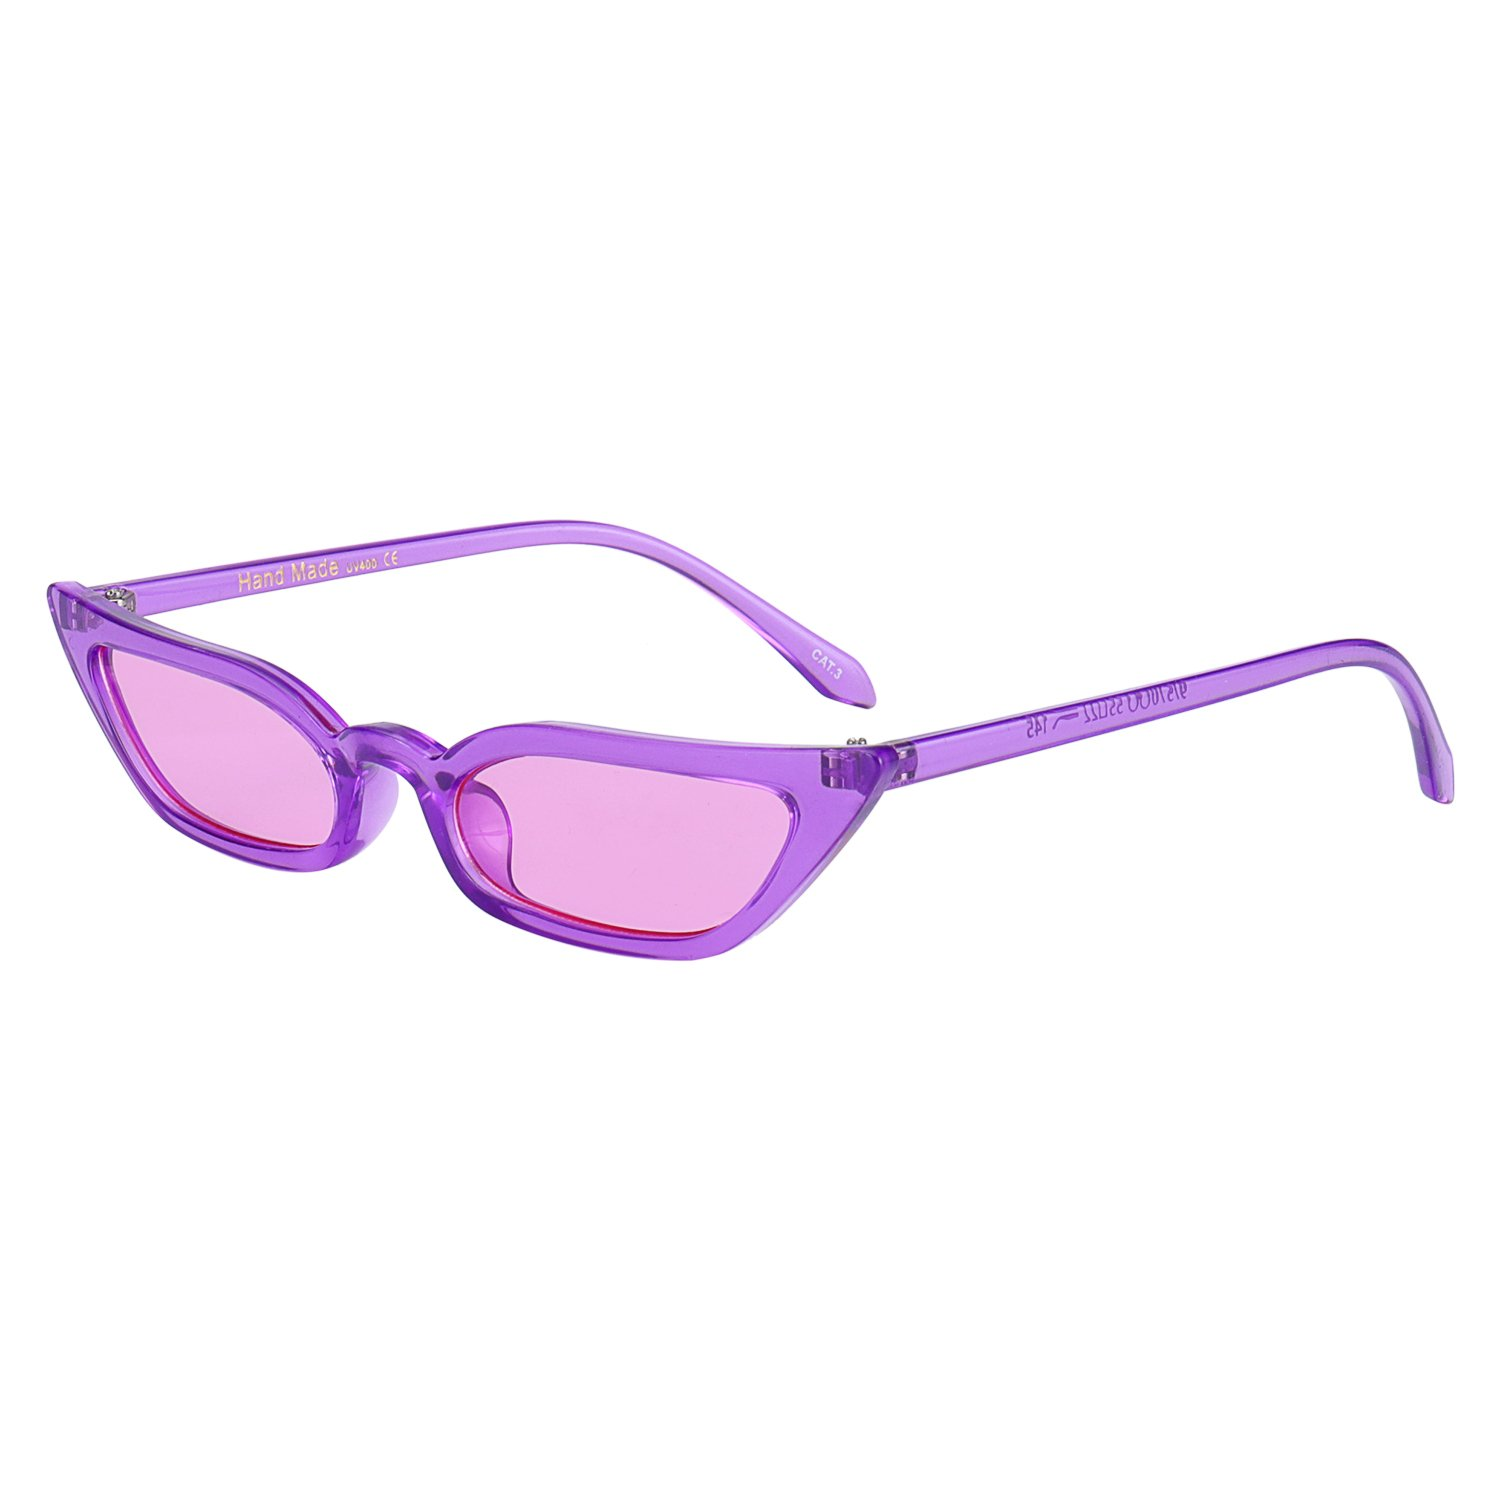 Purple WOWSUN Vintage Sex Cat Eye Sunglasses Candy color Clout Goggles for Women